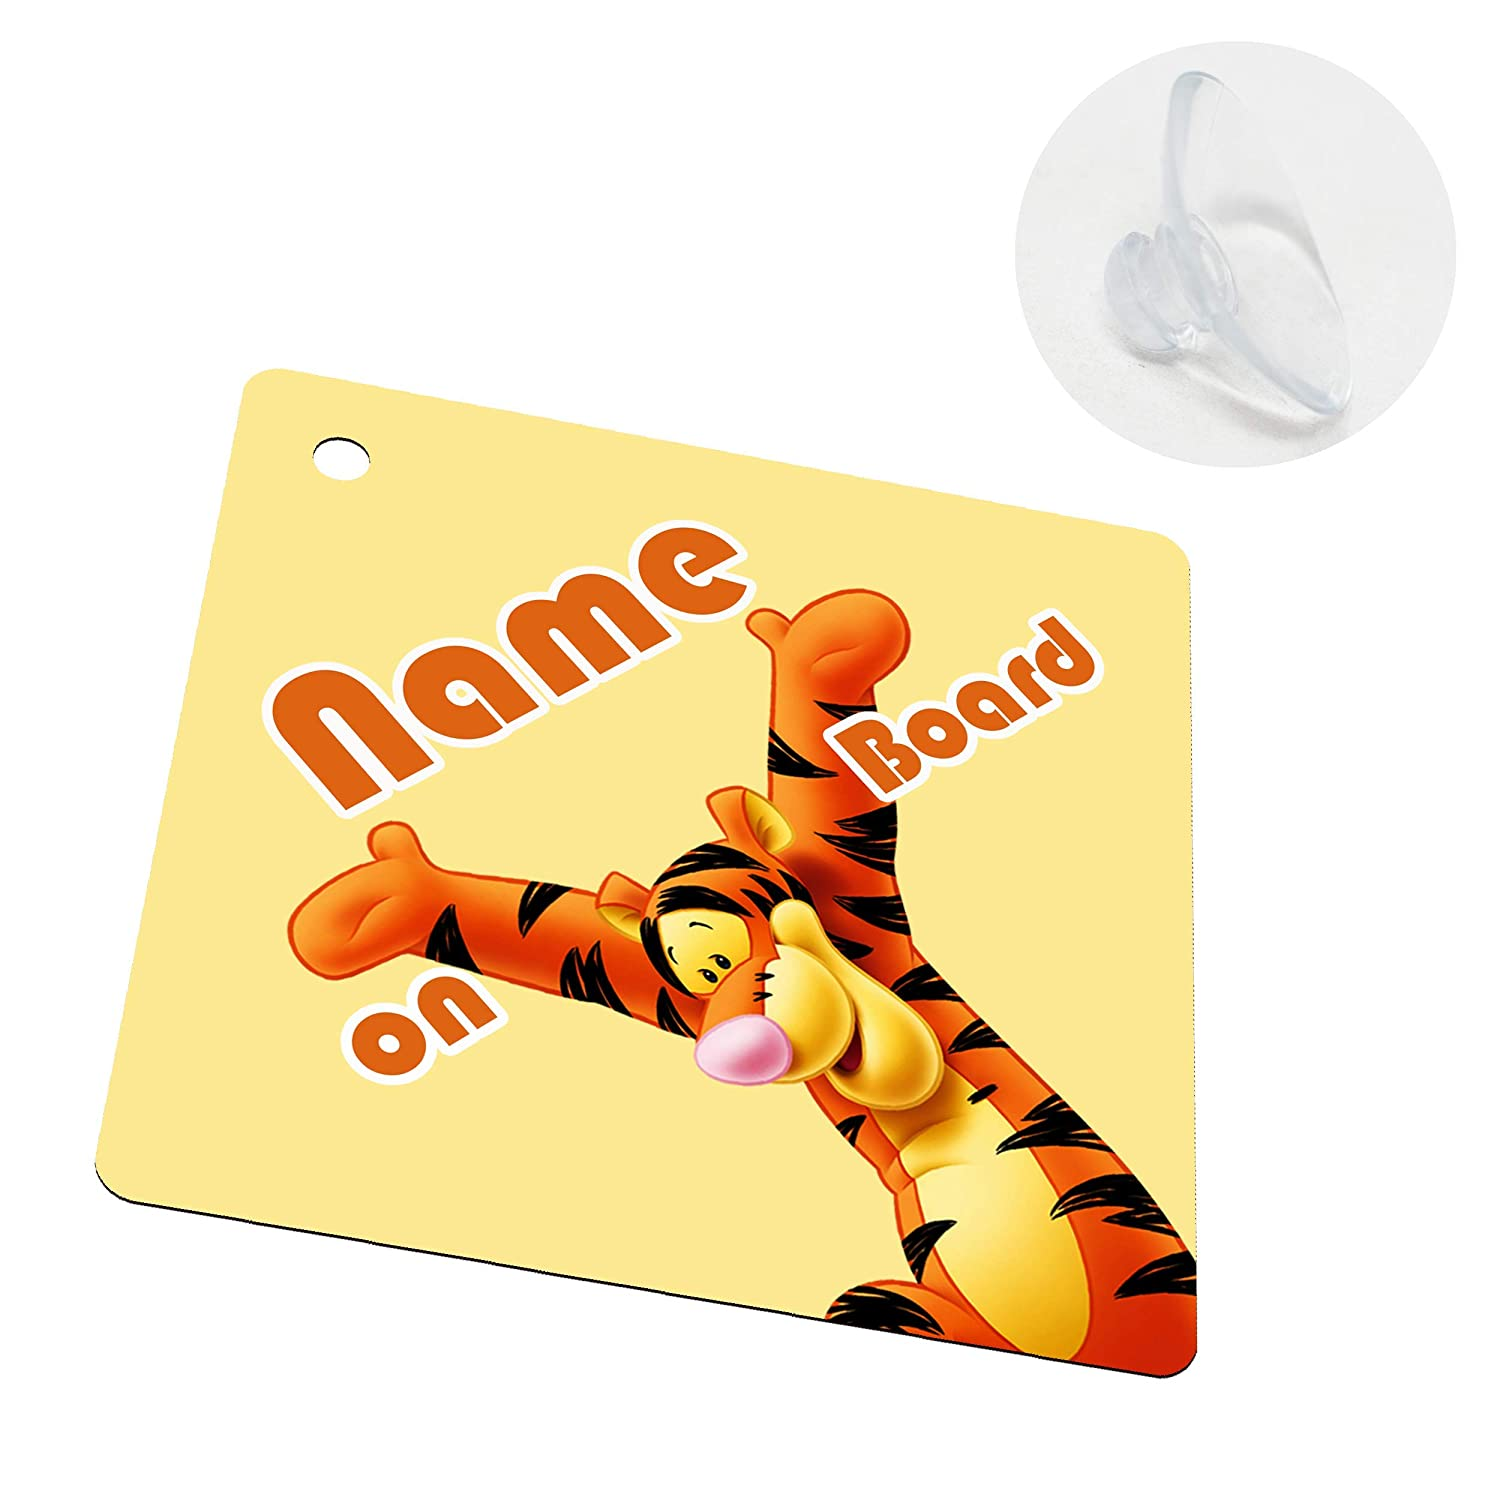 Baby on Board Kids Sign for Boys and Girls Single Sided with Suction Cup I-CHOOSE LIMITED Personalised Your Baby Name Car Windows Sign Sticker